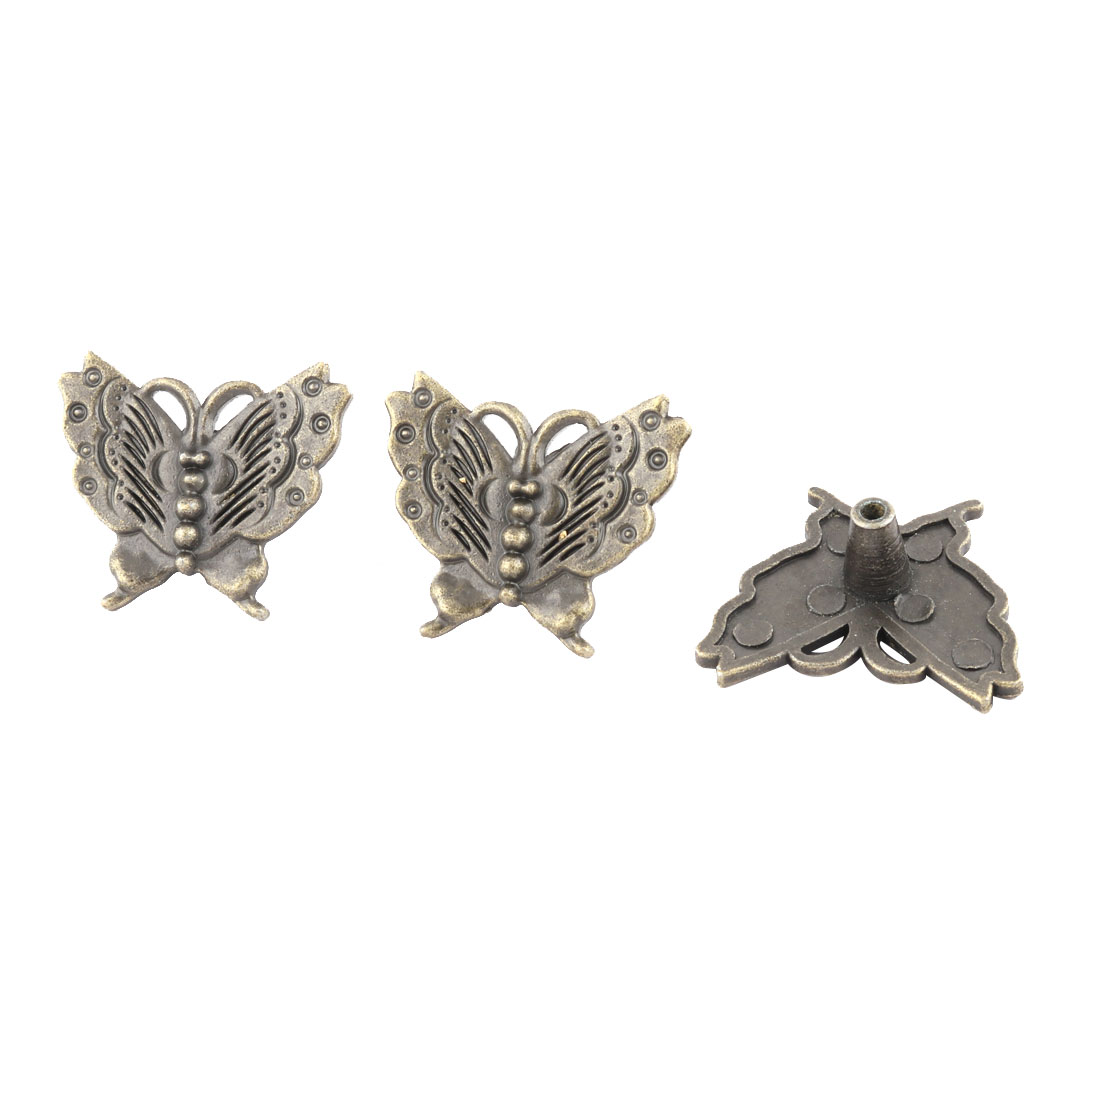 Home Butterfly Vintage Style Drawer Cabinet Pull Knob Handle Bronze Tone 3pcs